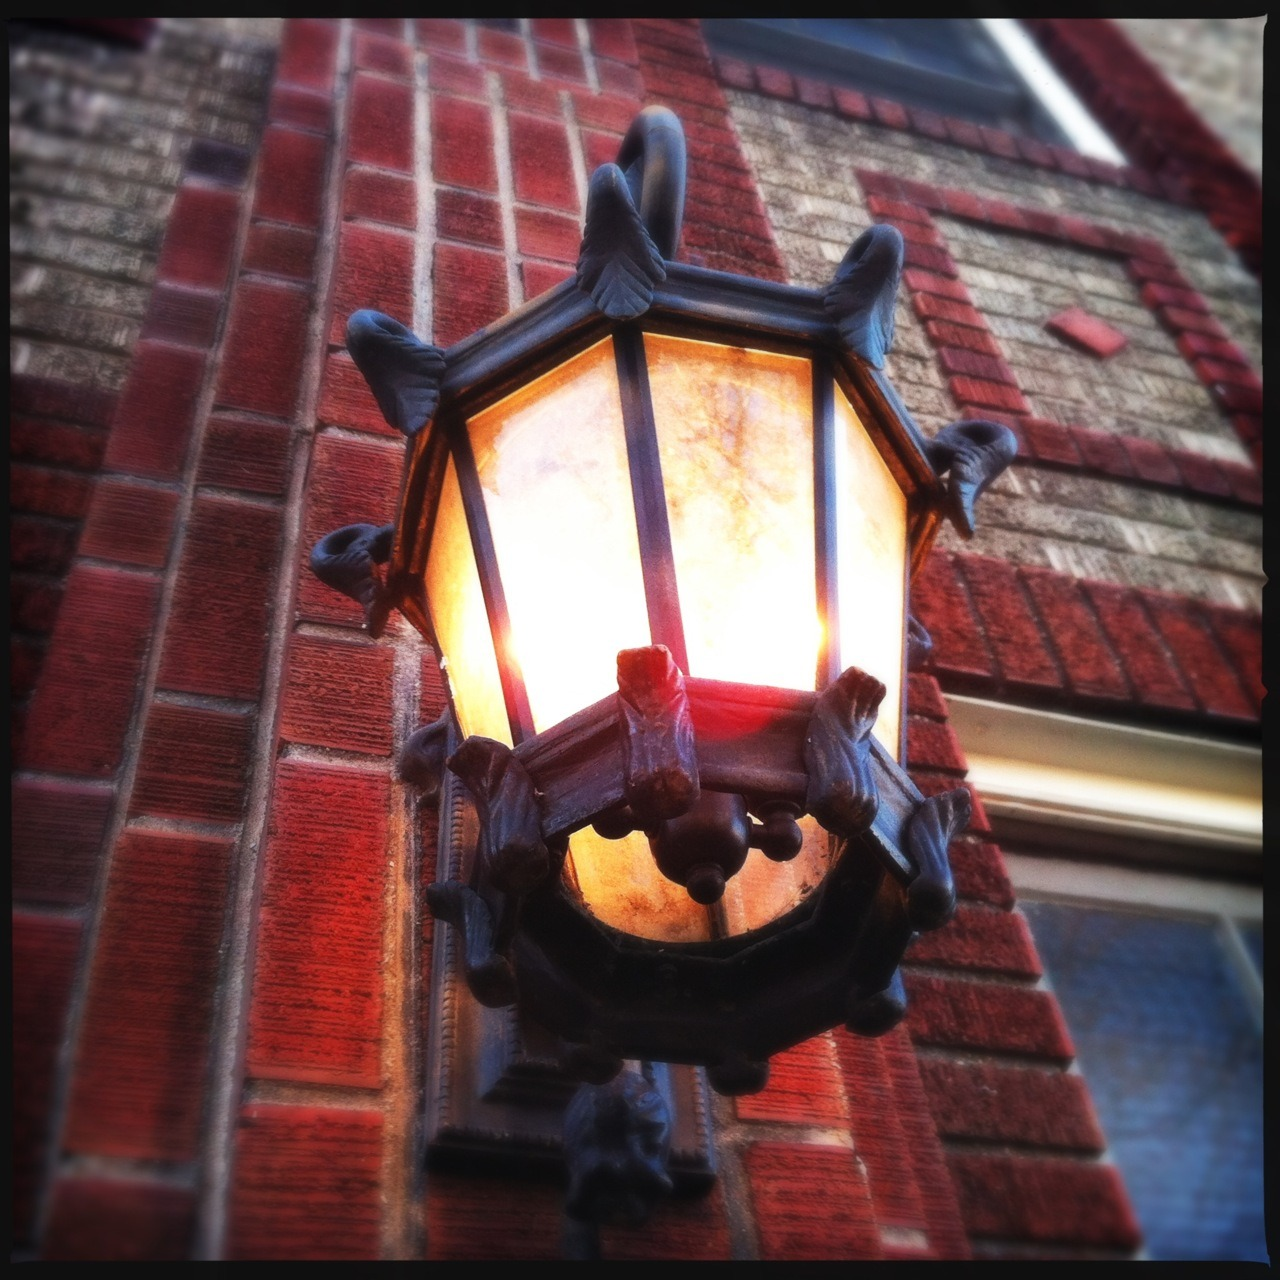 Lamp Taken with Hipstamatic, Loftus Lens, DC Film, No Flash.